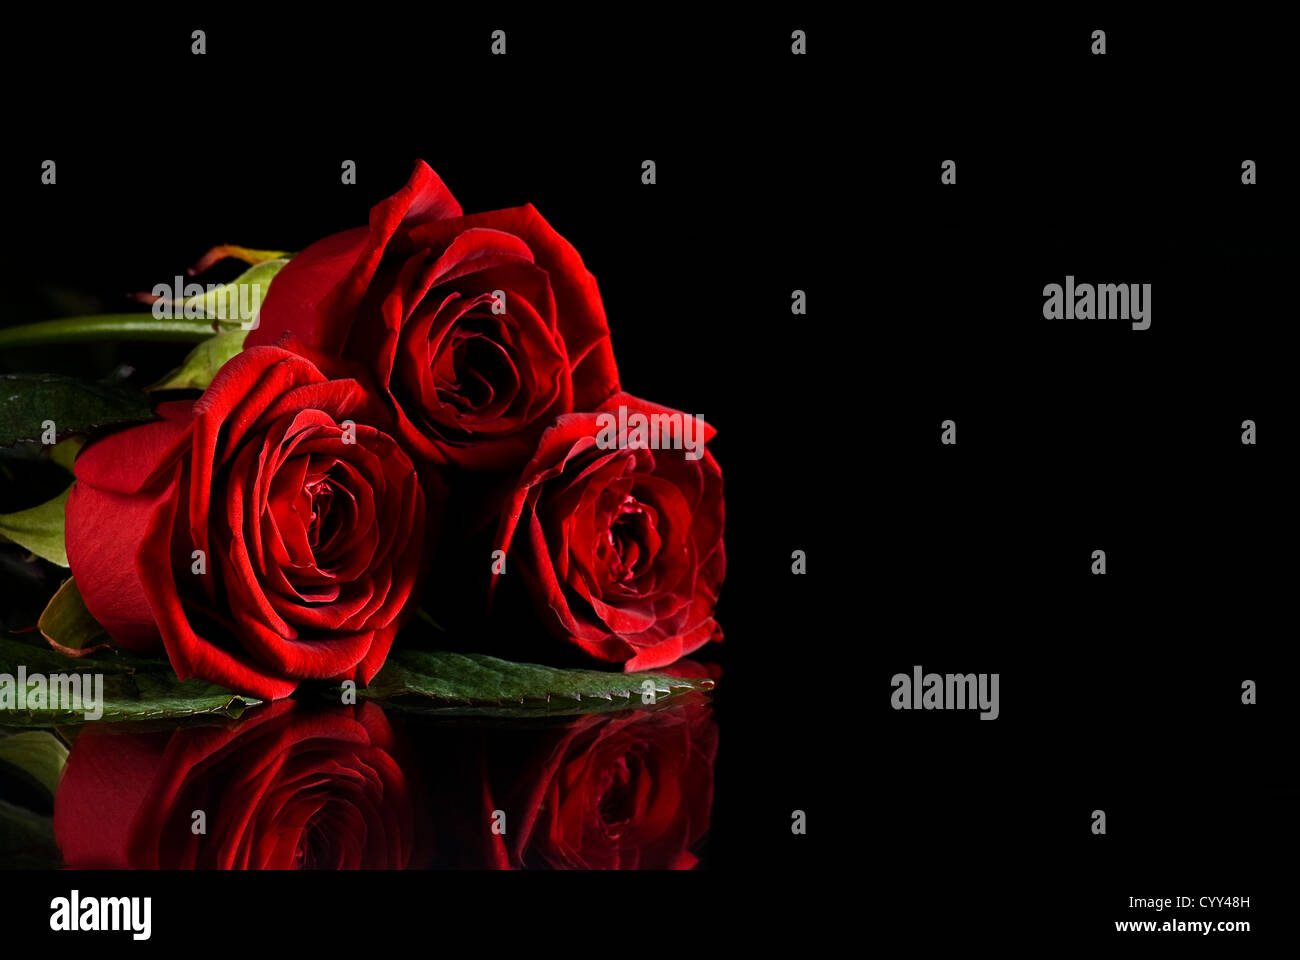 Red Roses On Black Background High Resolution Stock Photography And Images Alamy